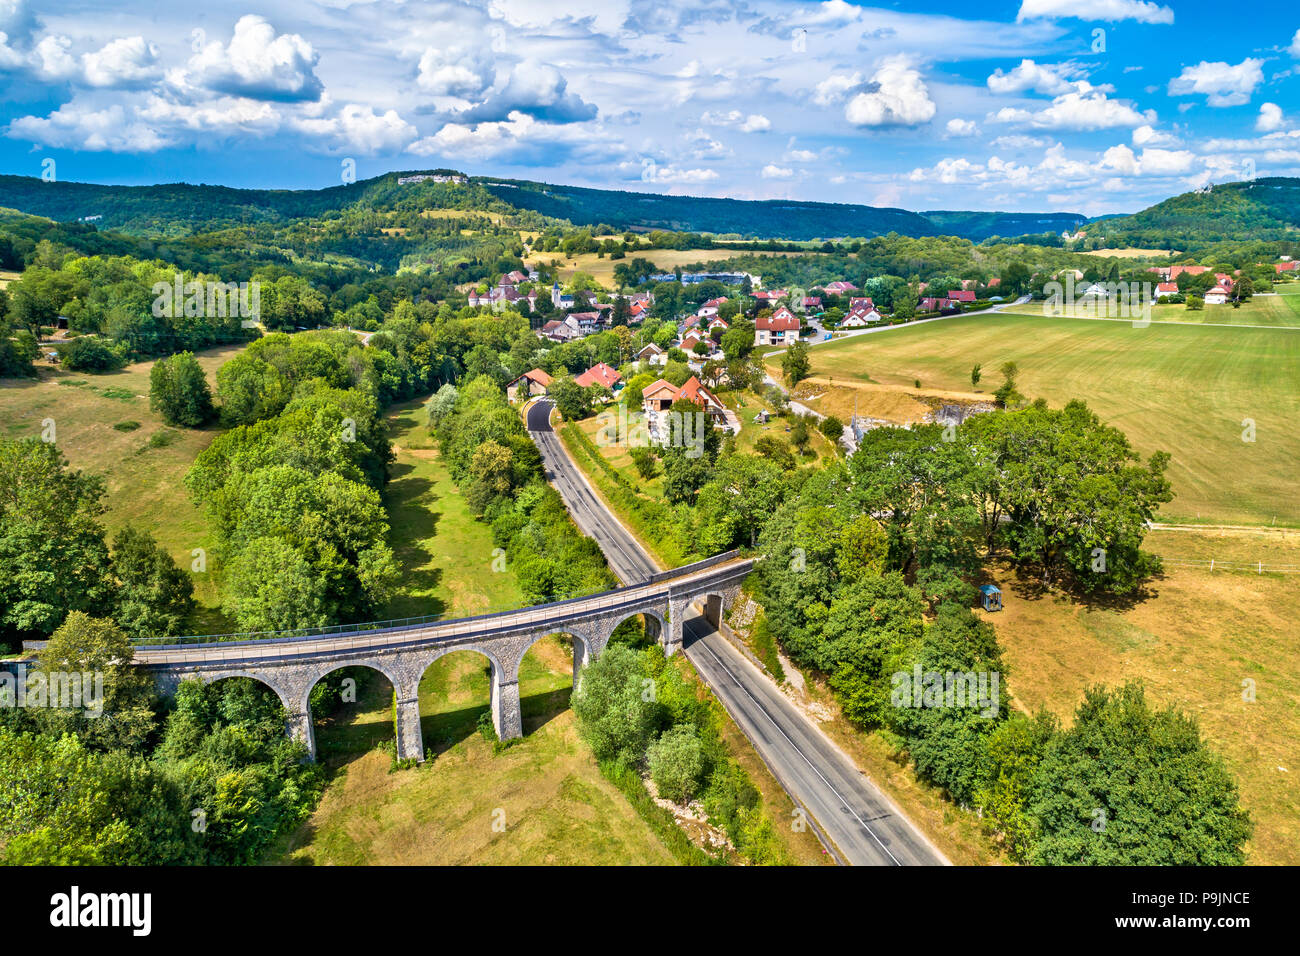 Aerial view of an old railway viaduct in Cleron, a village in France - Stock Image